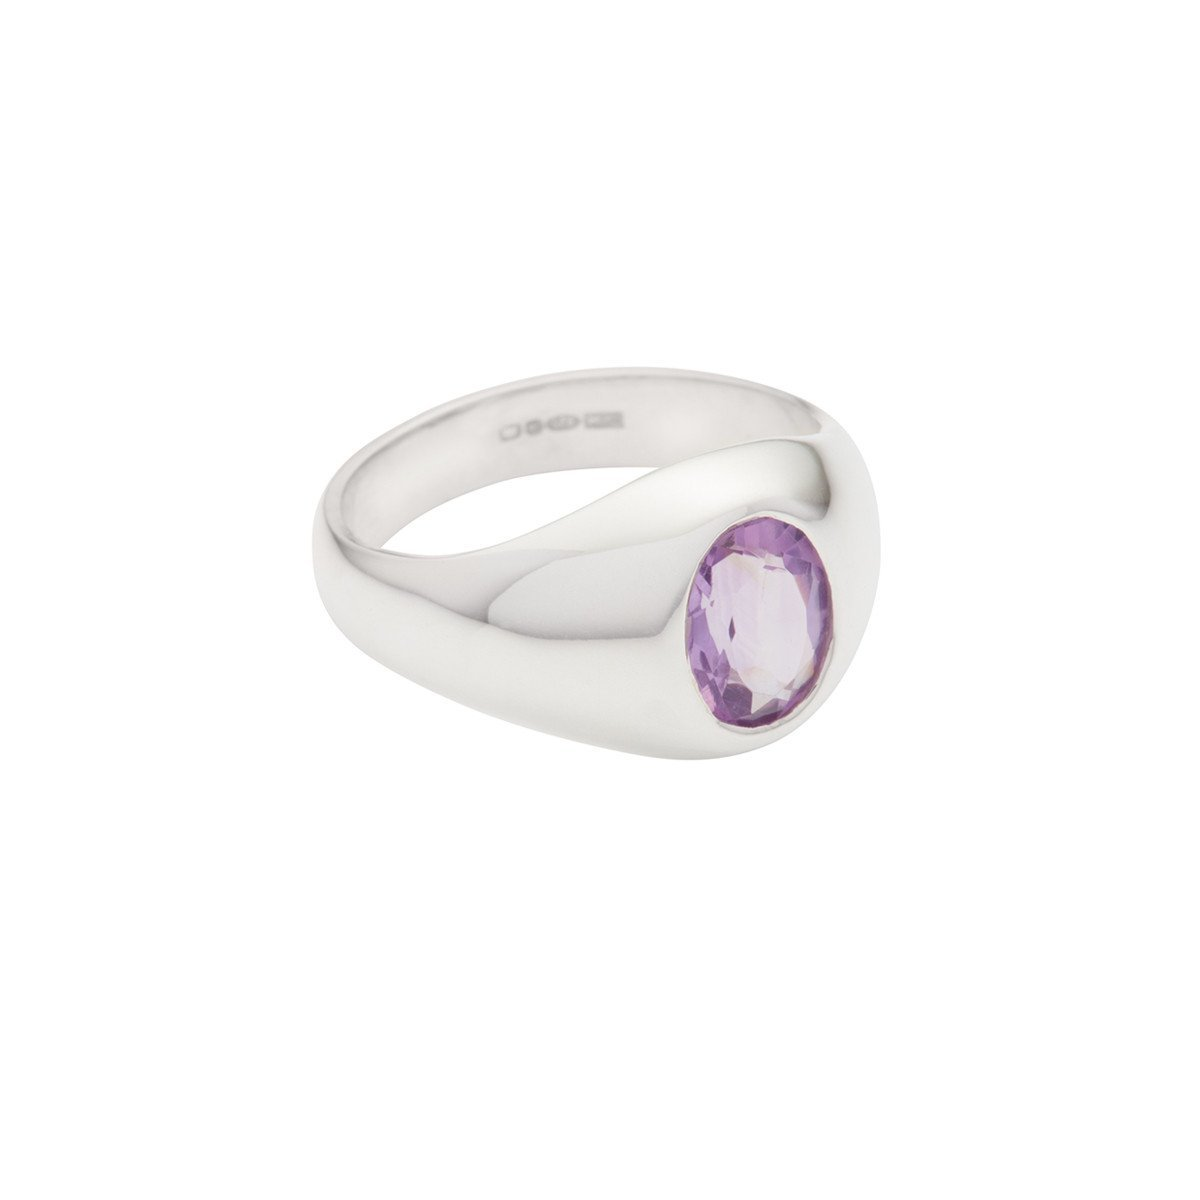 SUSAN CAPLAN CONTEMPORARY STERLING SILVER RING WITH AMETHYST